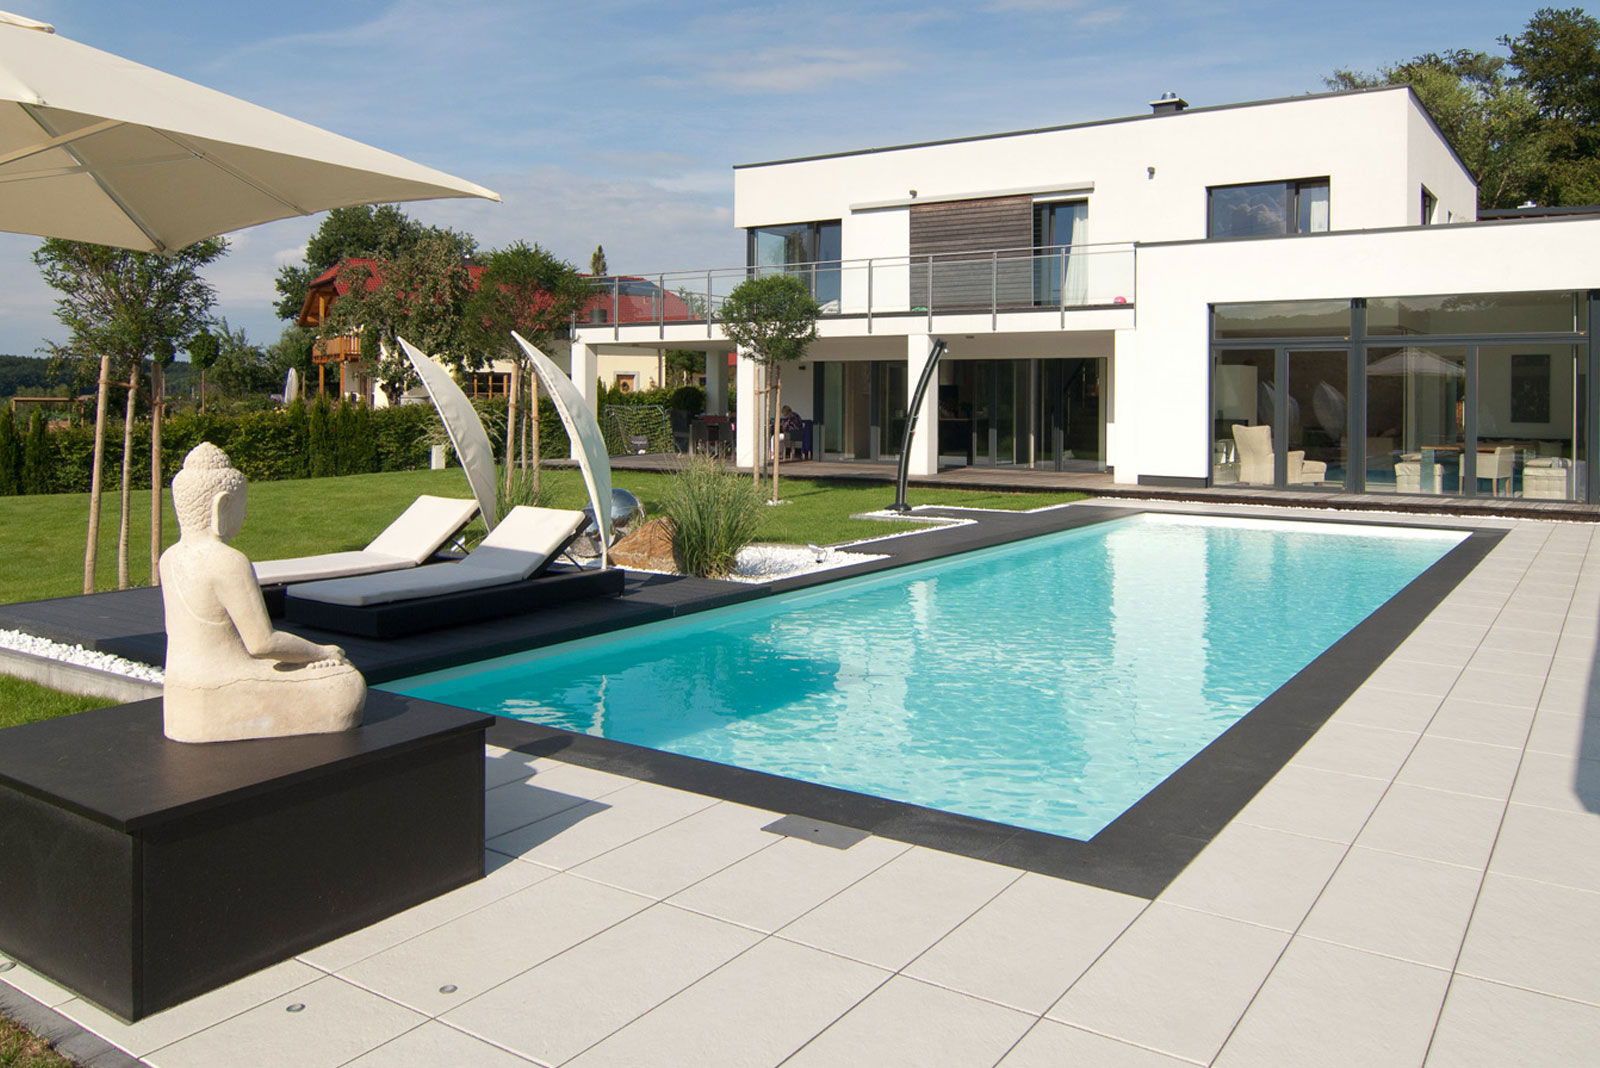 Reps Gmbh Schwimmbad Whirlpool Poolservice